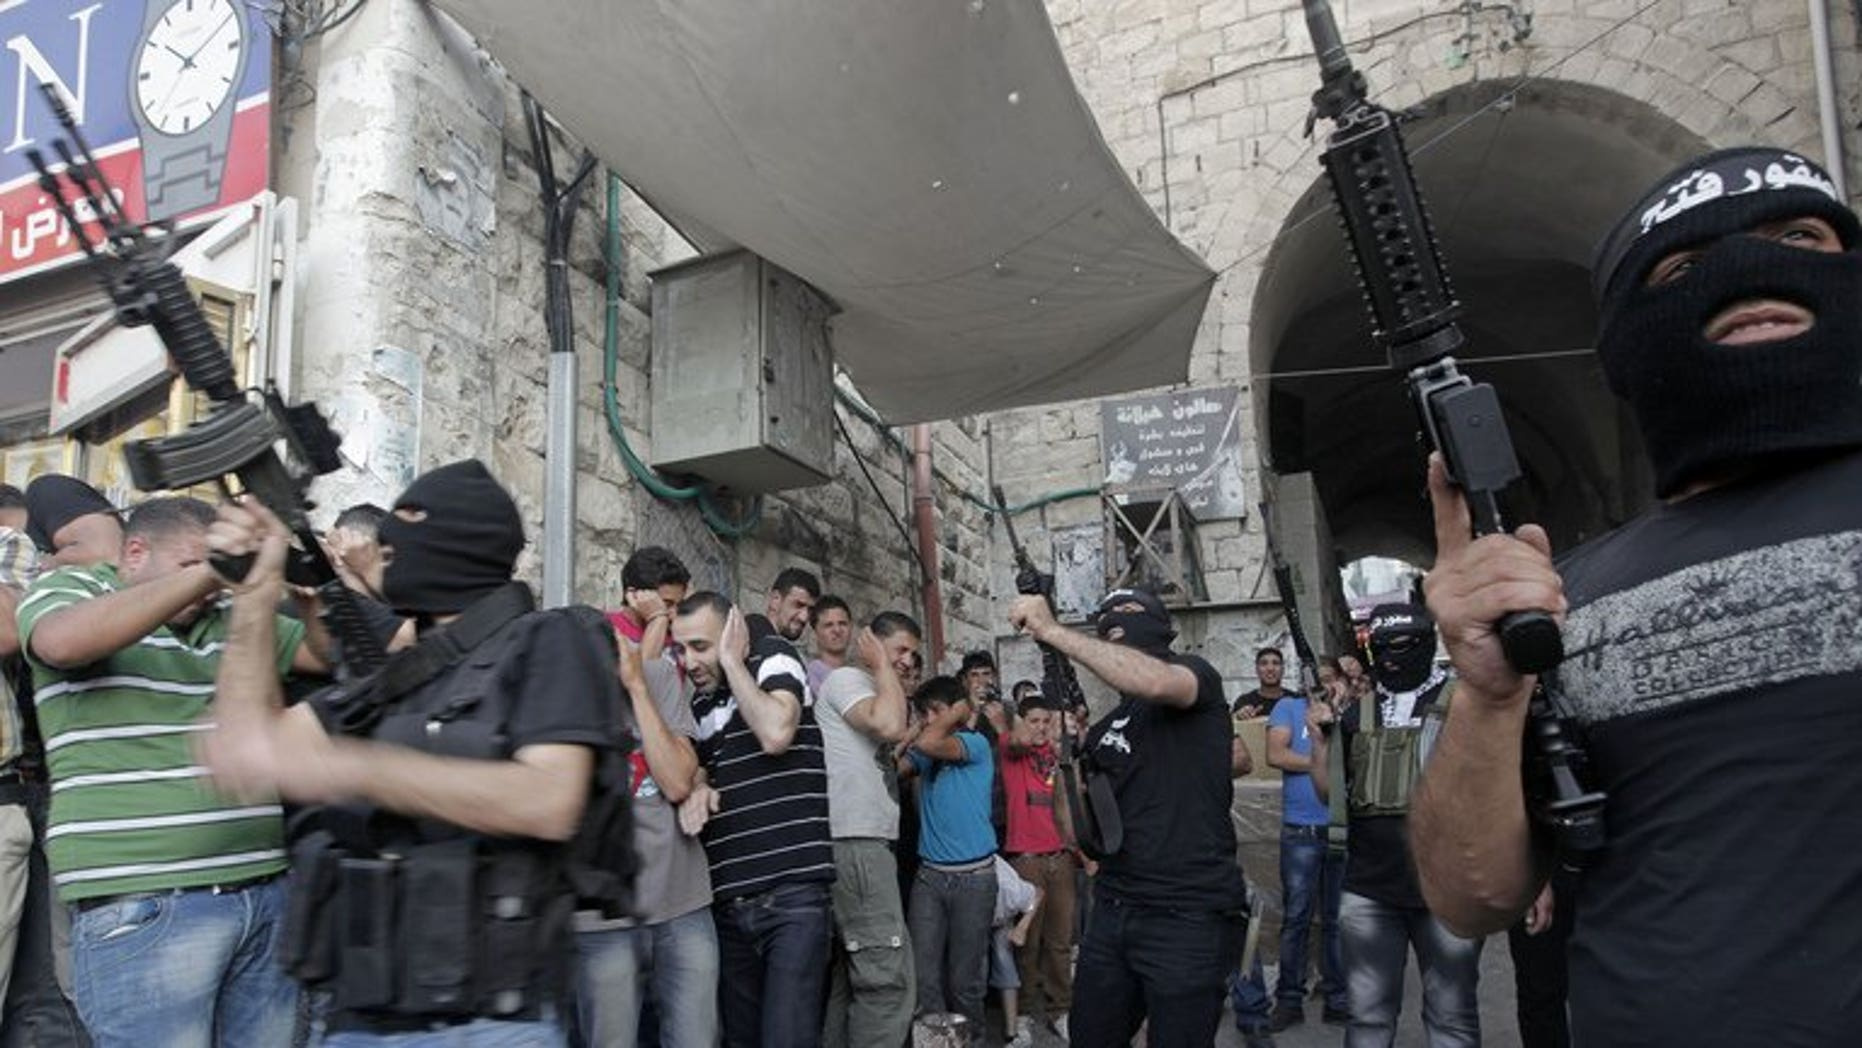 Militants of Al-Aqsa Martyrs' Brigade fire celebratory shots during a ceremony for group member Jamal Nablusi in the West Bank city of Nablus on June 2, 2013 following his release from Israeli prison after serving eight years. As negotiators headed to Washington for the resumption of peace talks on Monday, most Israeli newspapers hit out at the decision to free 104 prisoners in return.